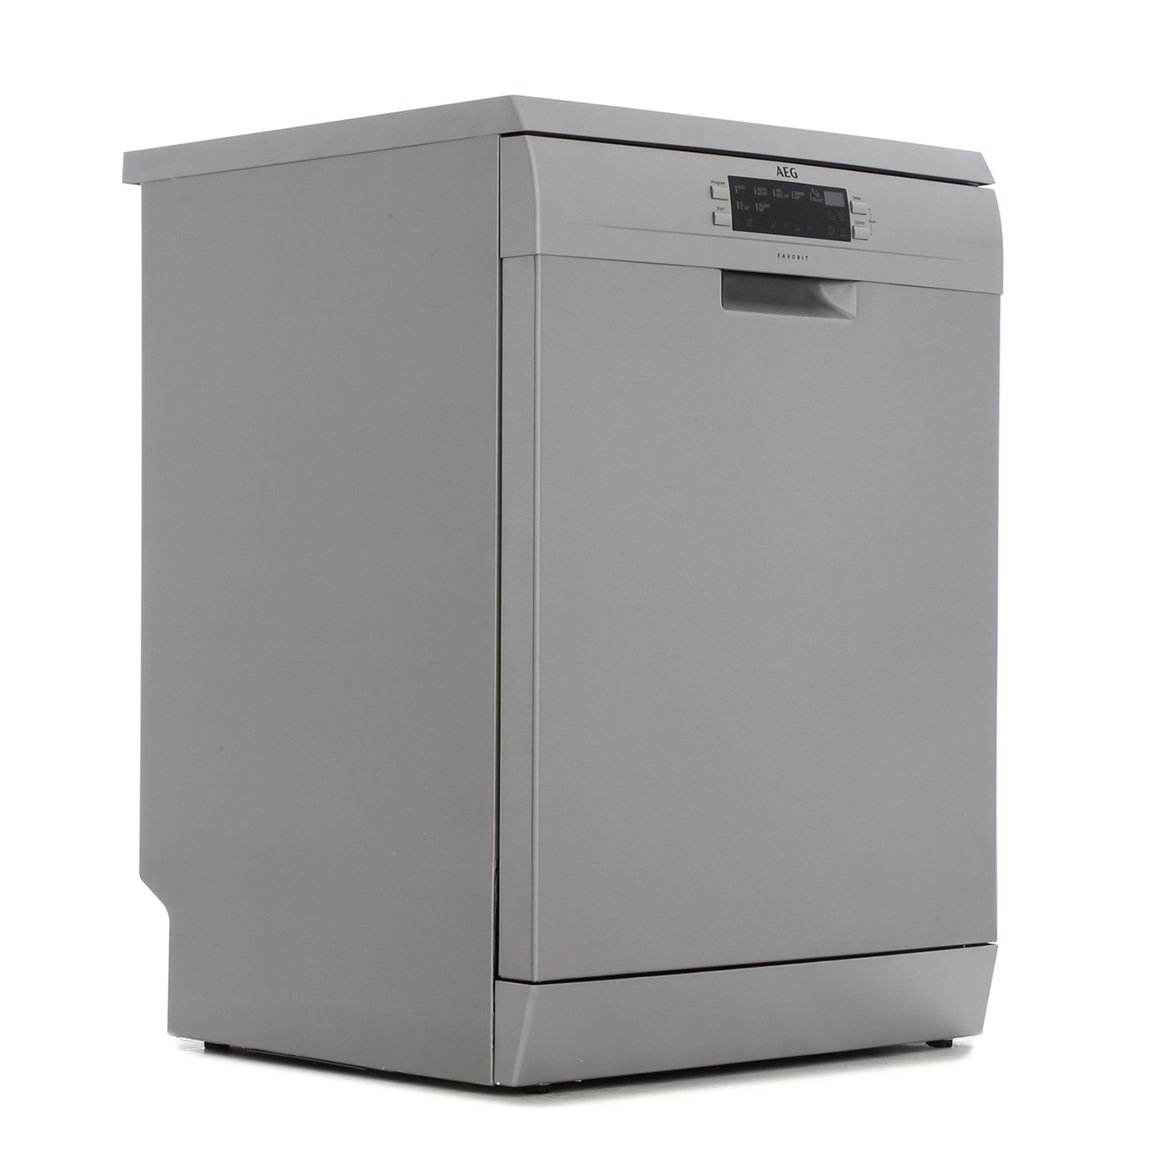 AEG FFE63700PM Dishwasher with AirDry Technology